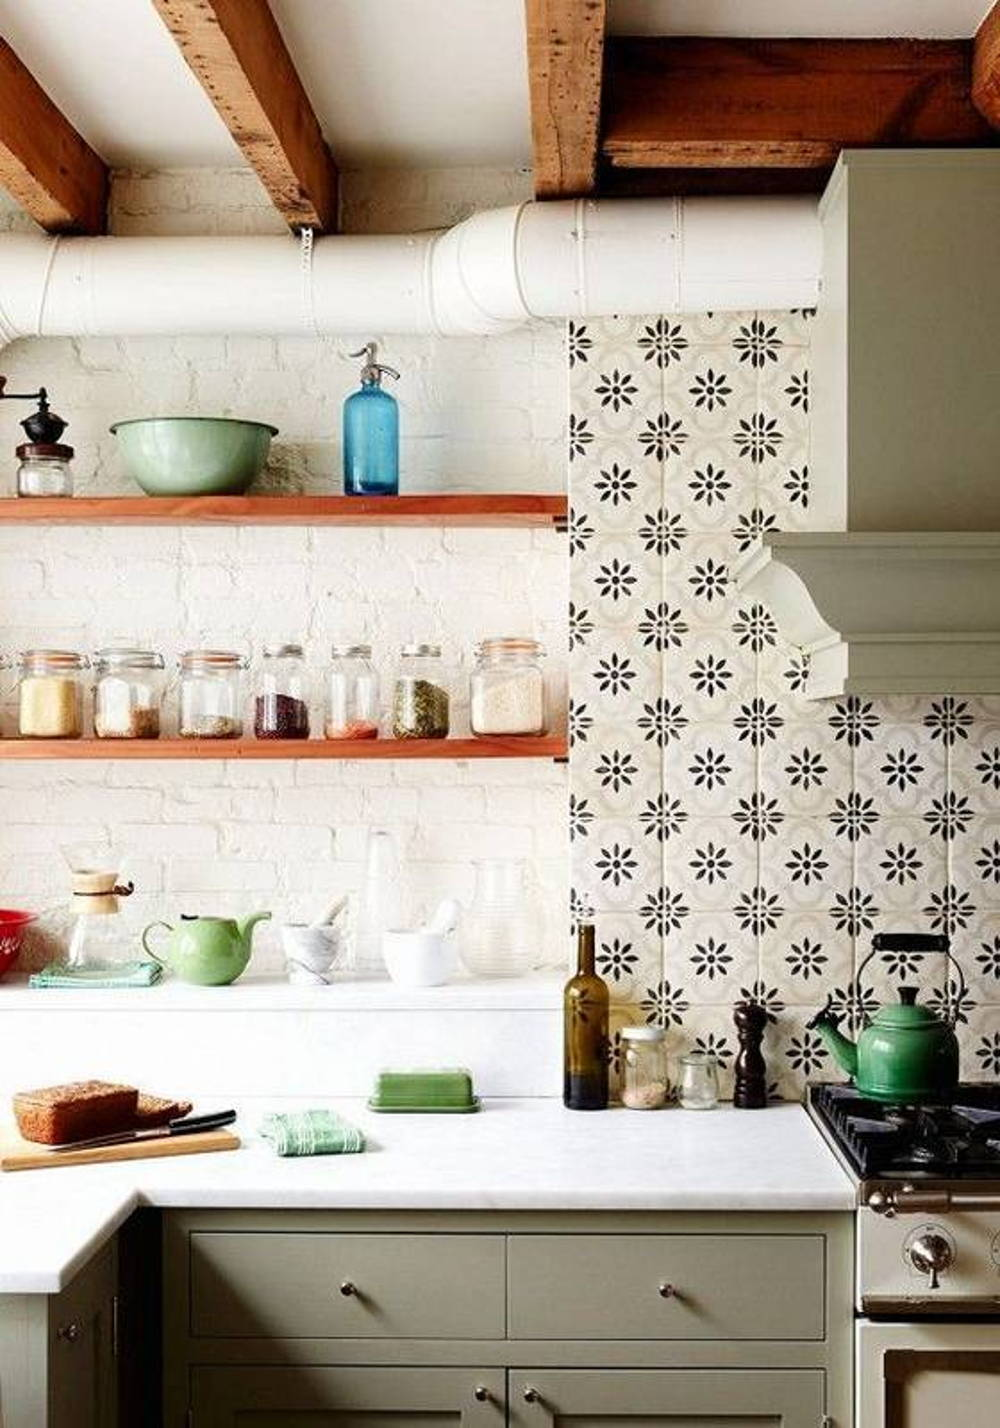 Floral kitchen backsplash tiles